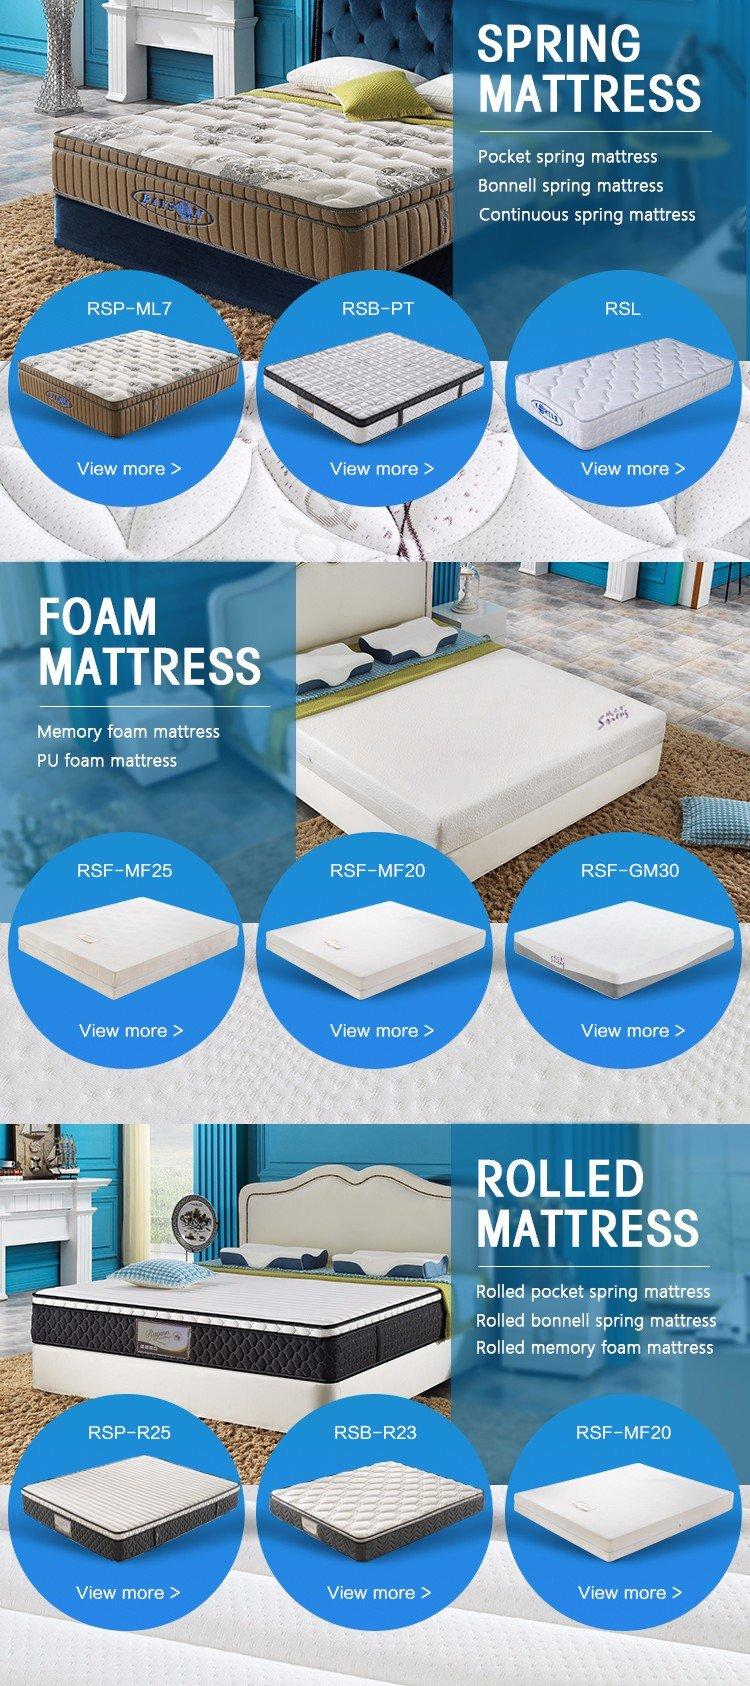 Latest sealy anniversary mattress top Suppliers